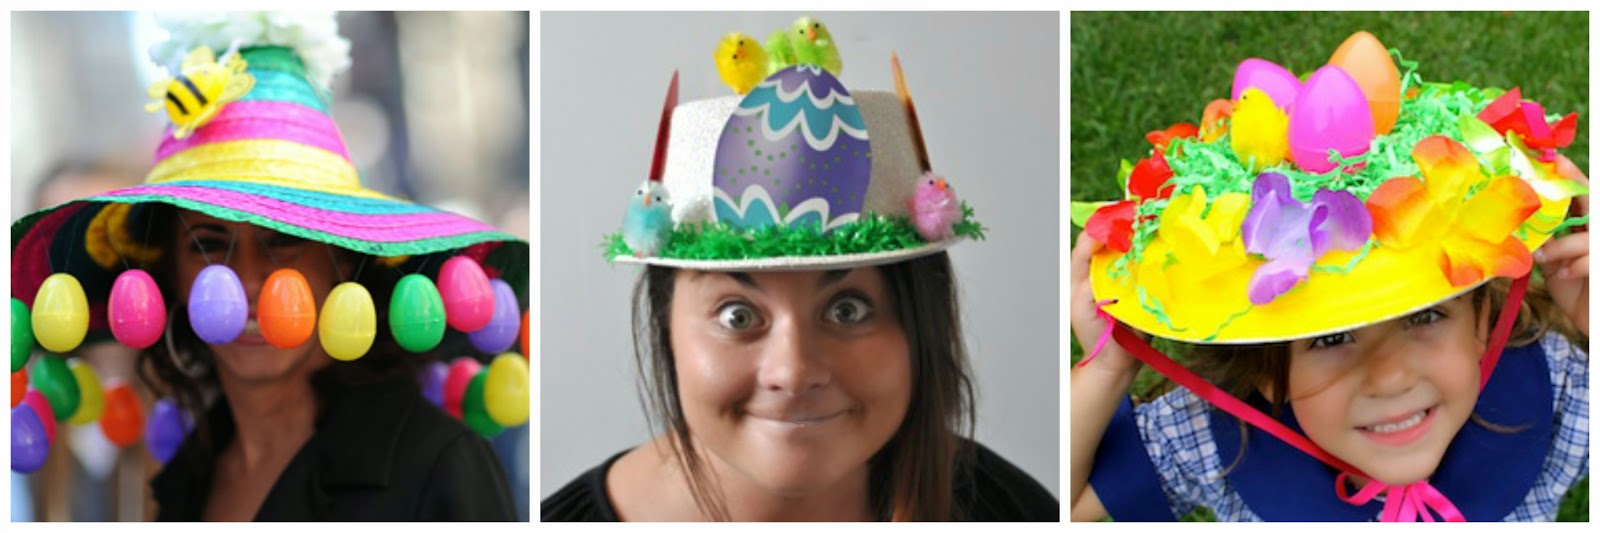 Easter bonnets, Easter traditions, tradycje wielkanocne, Head Full of Ideas